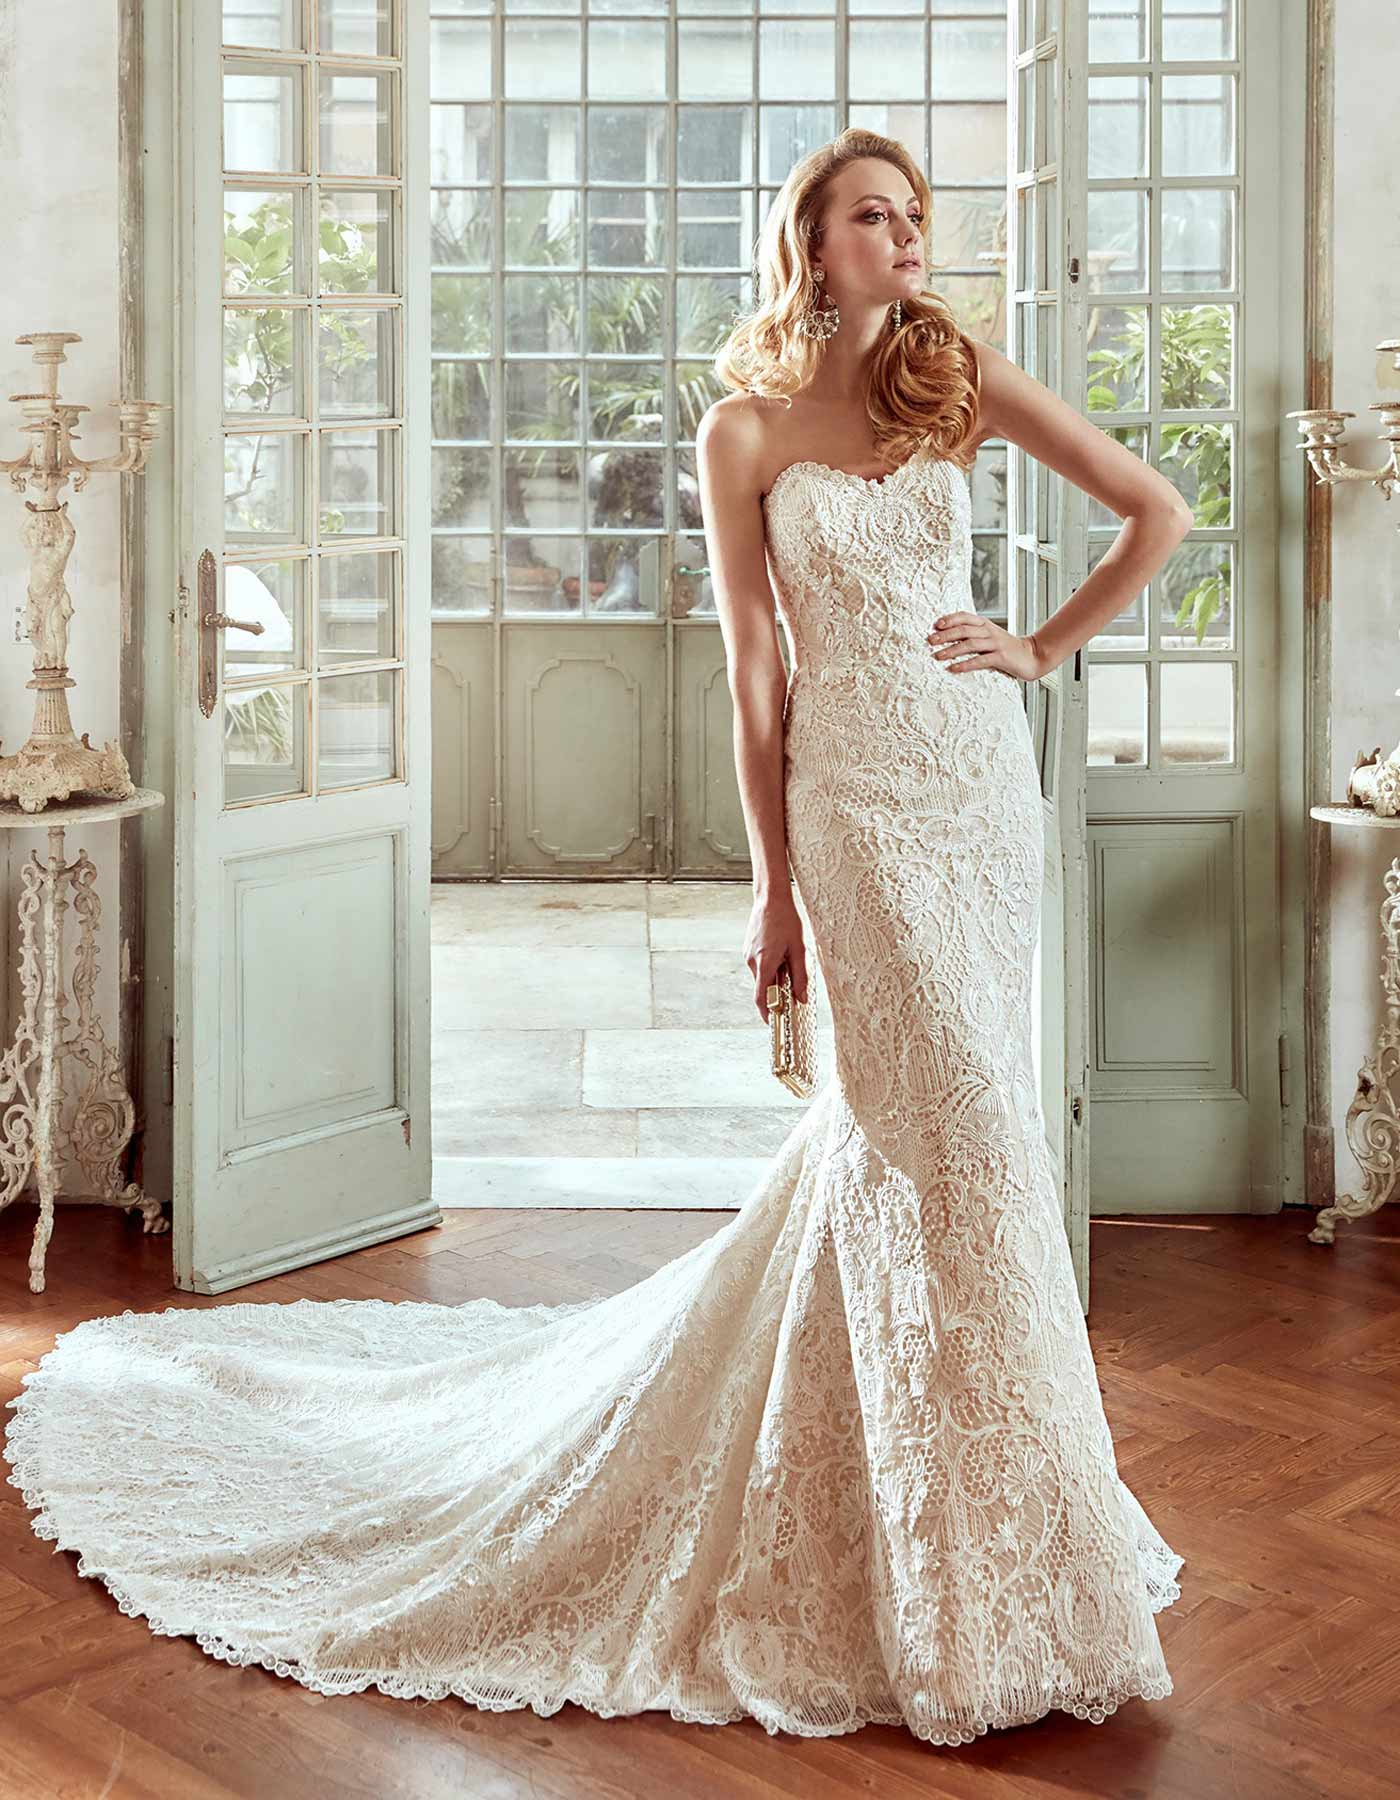 17109 By Nicole Spose Stunning Lace Fitted Wedding Dress